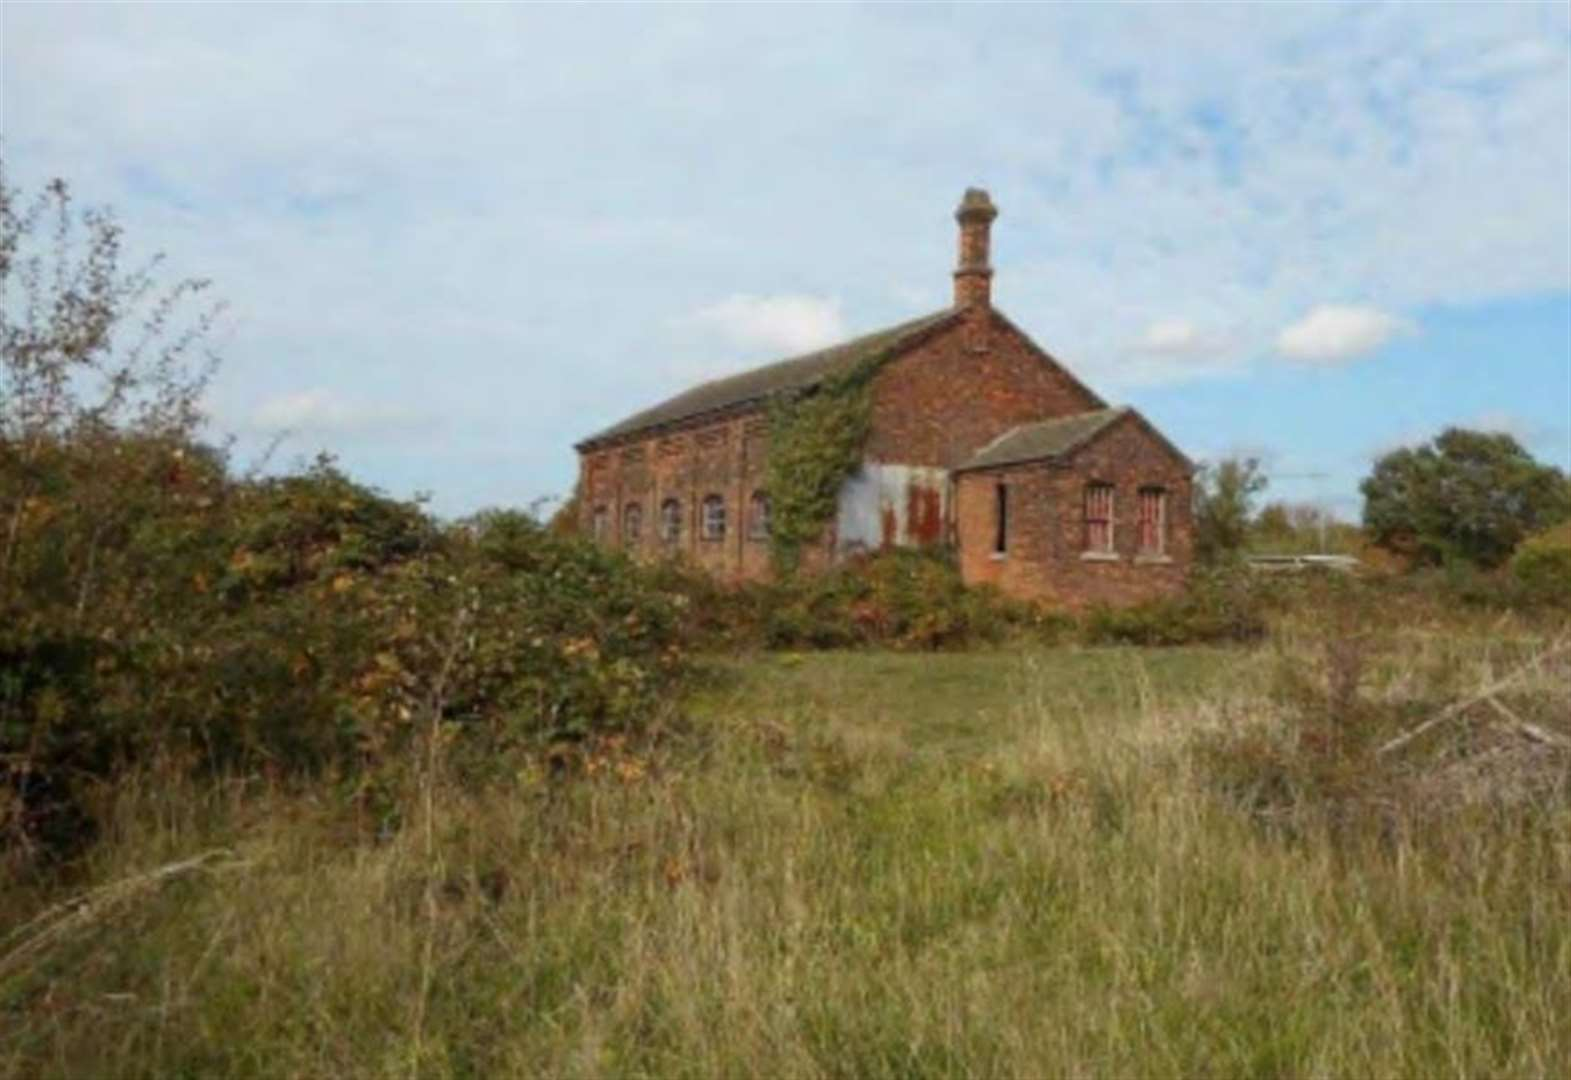 Cowbit homes plan questioned by English regional transport group